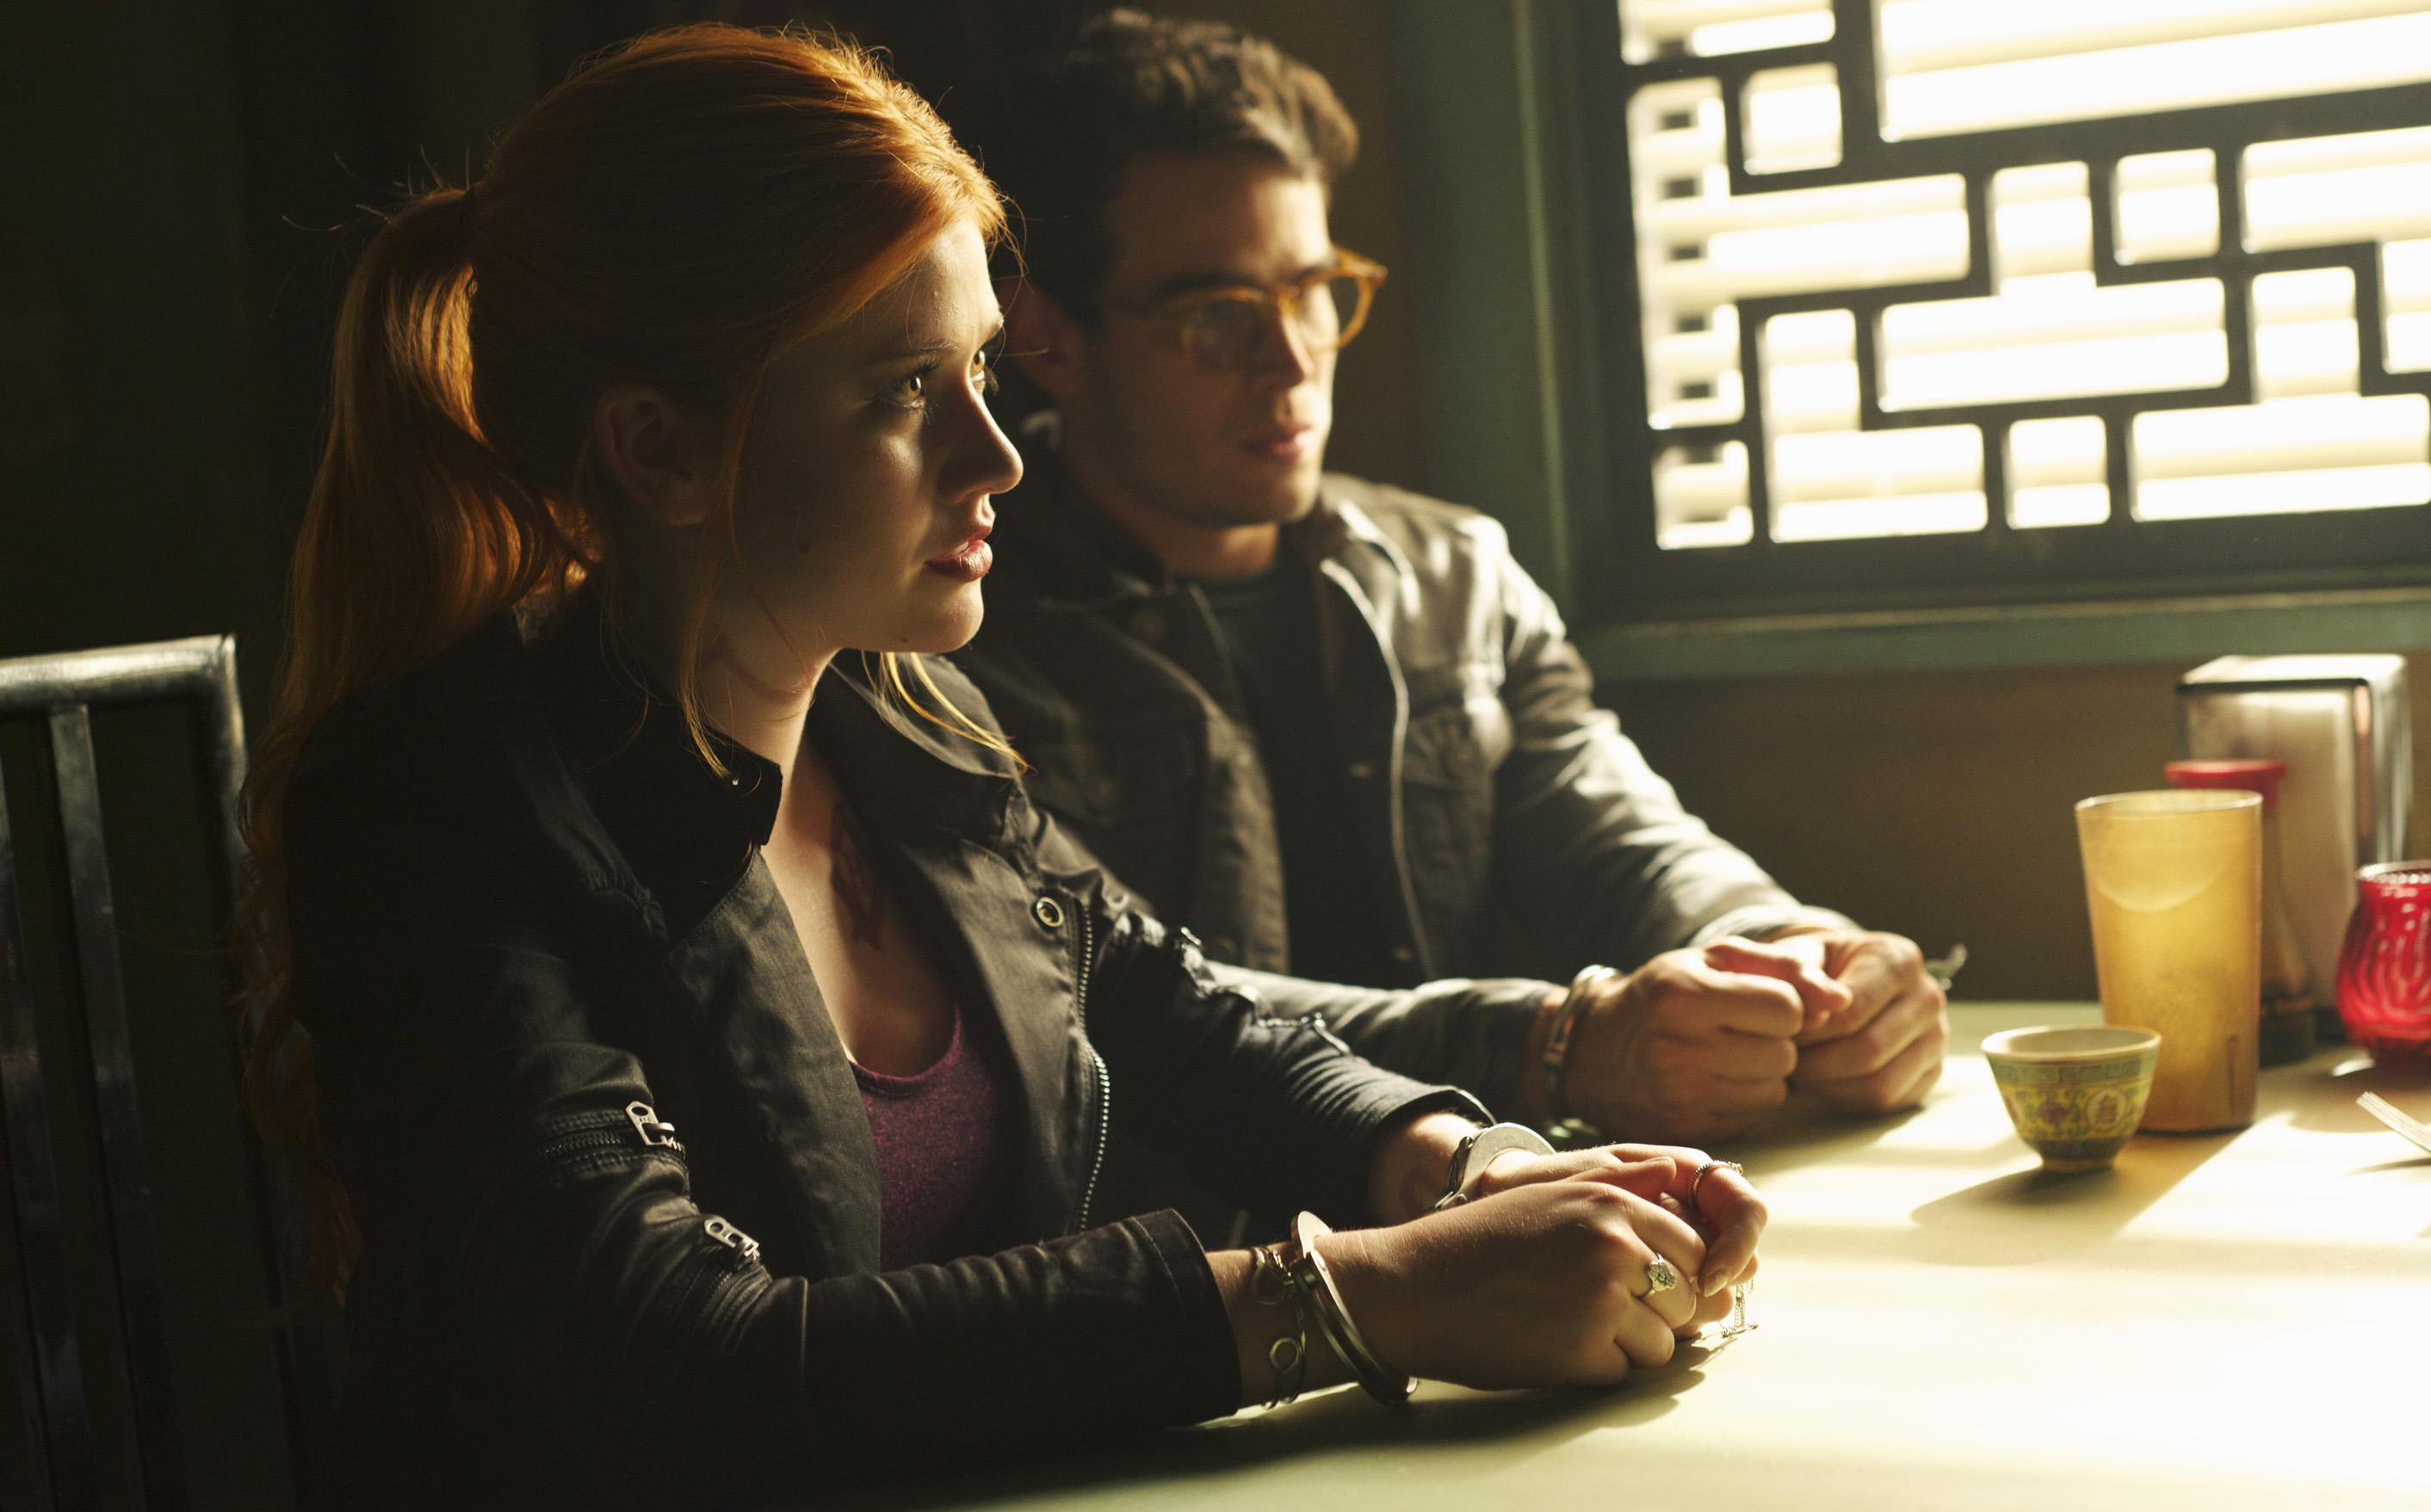 shadowhunters-season-1-episode-5-still-03